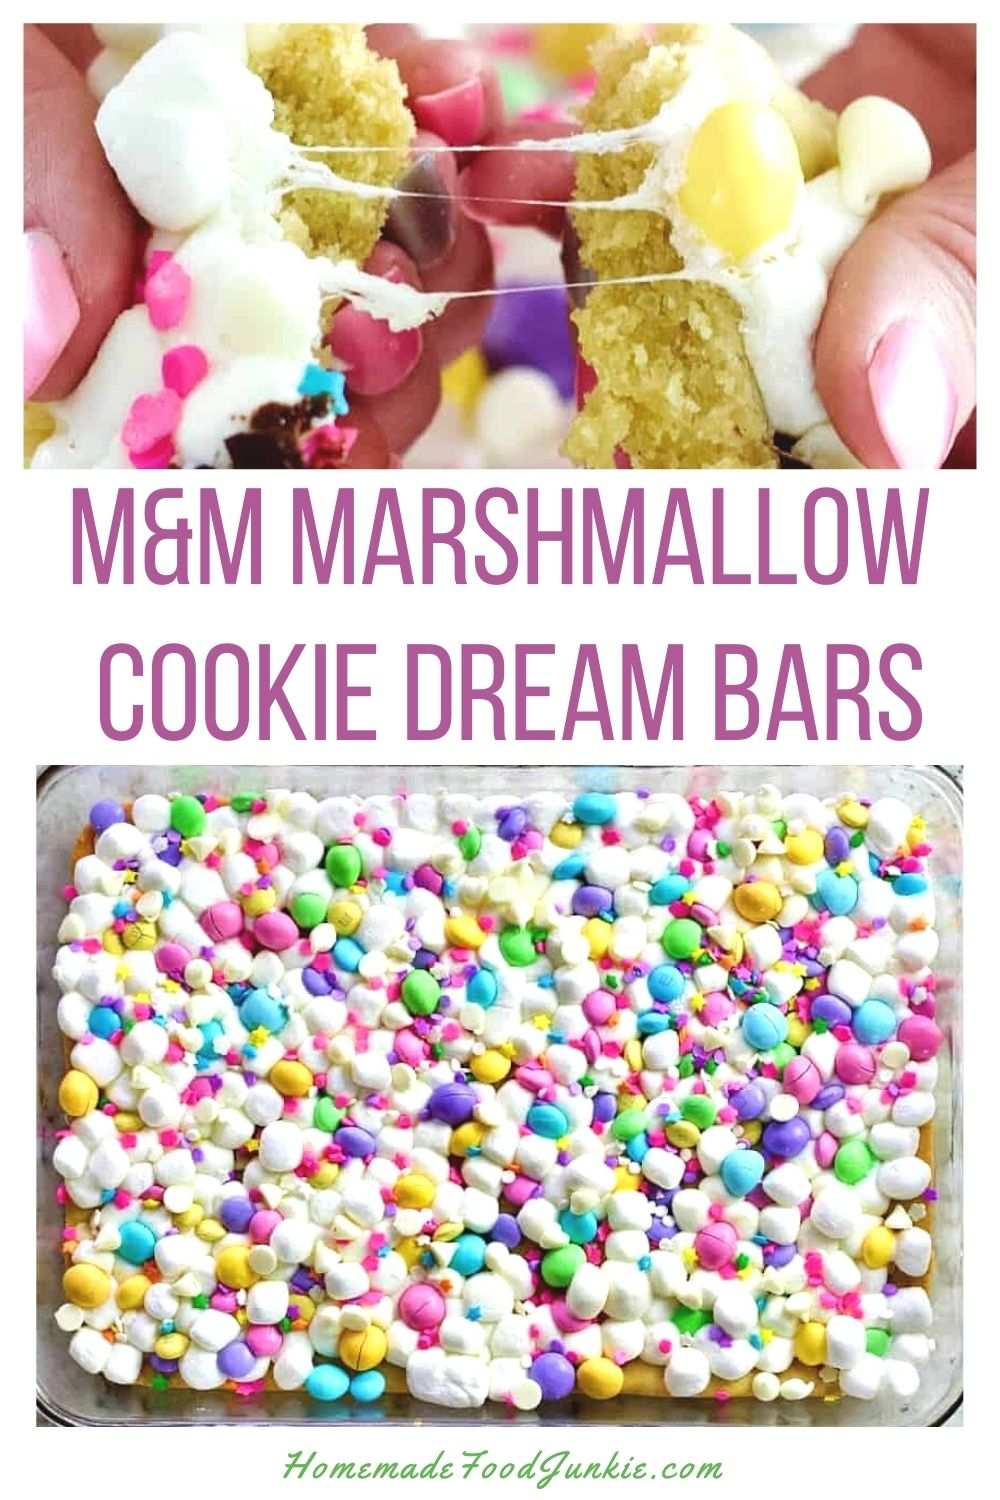 M&M marshmallow cookie dream bars-pin image